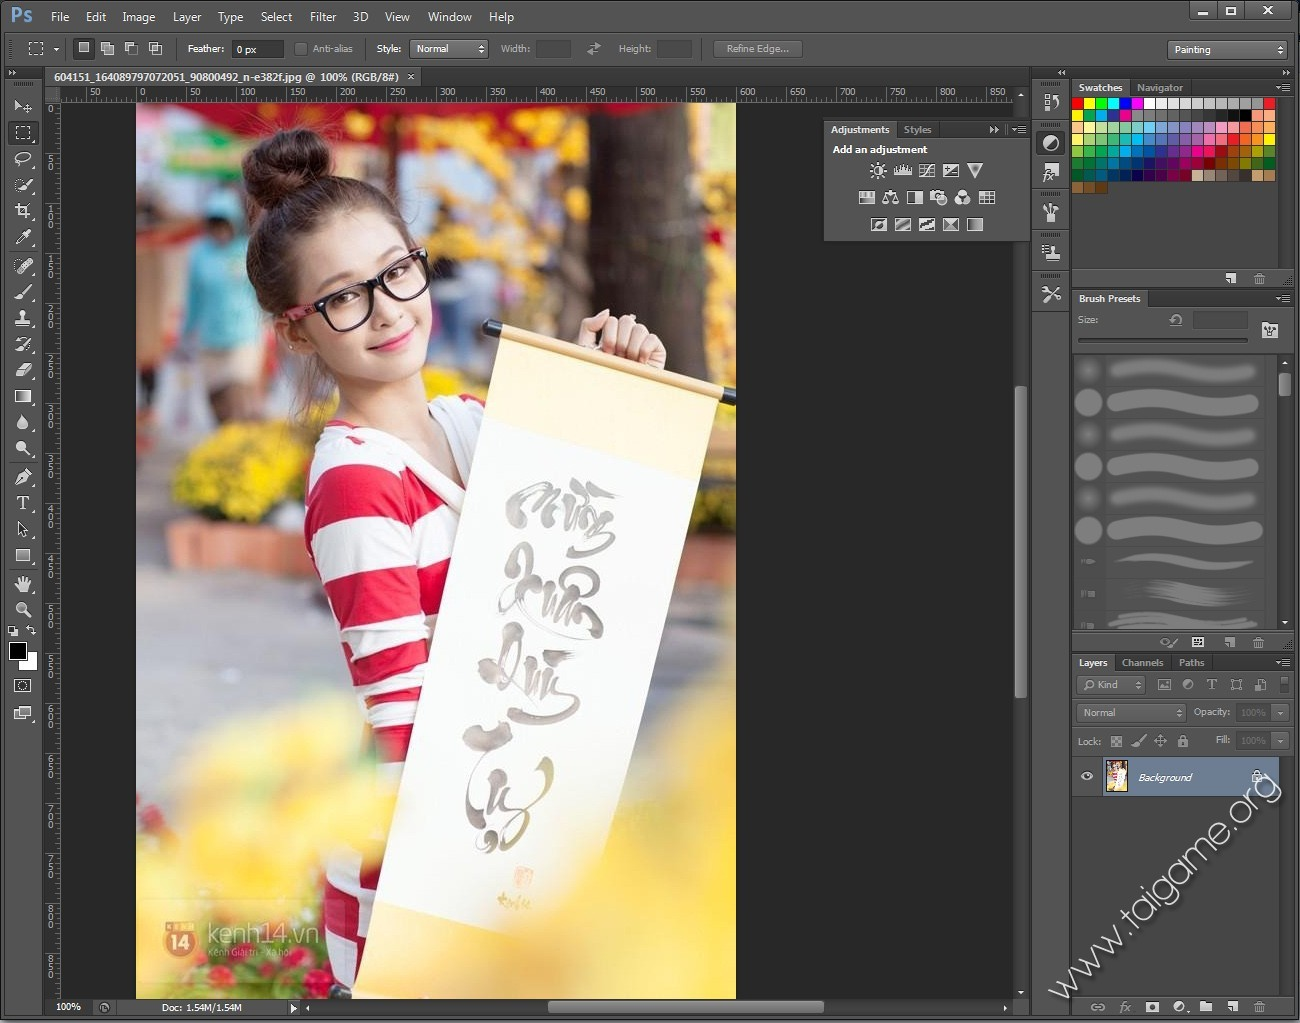 Adobe Photoshop Cs6 Extended Tai Game Download Phn Mm Picture1